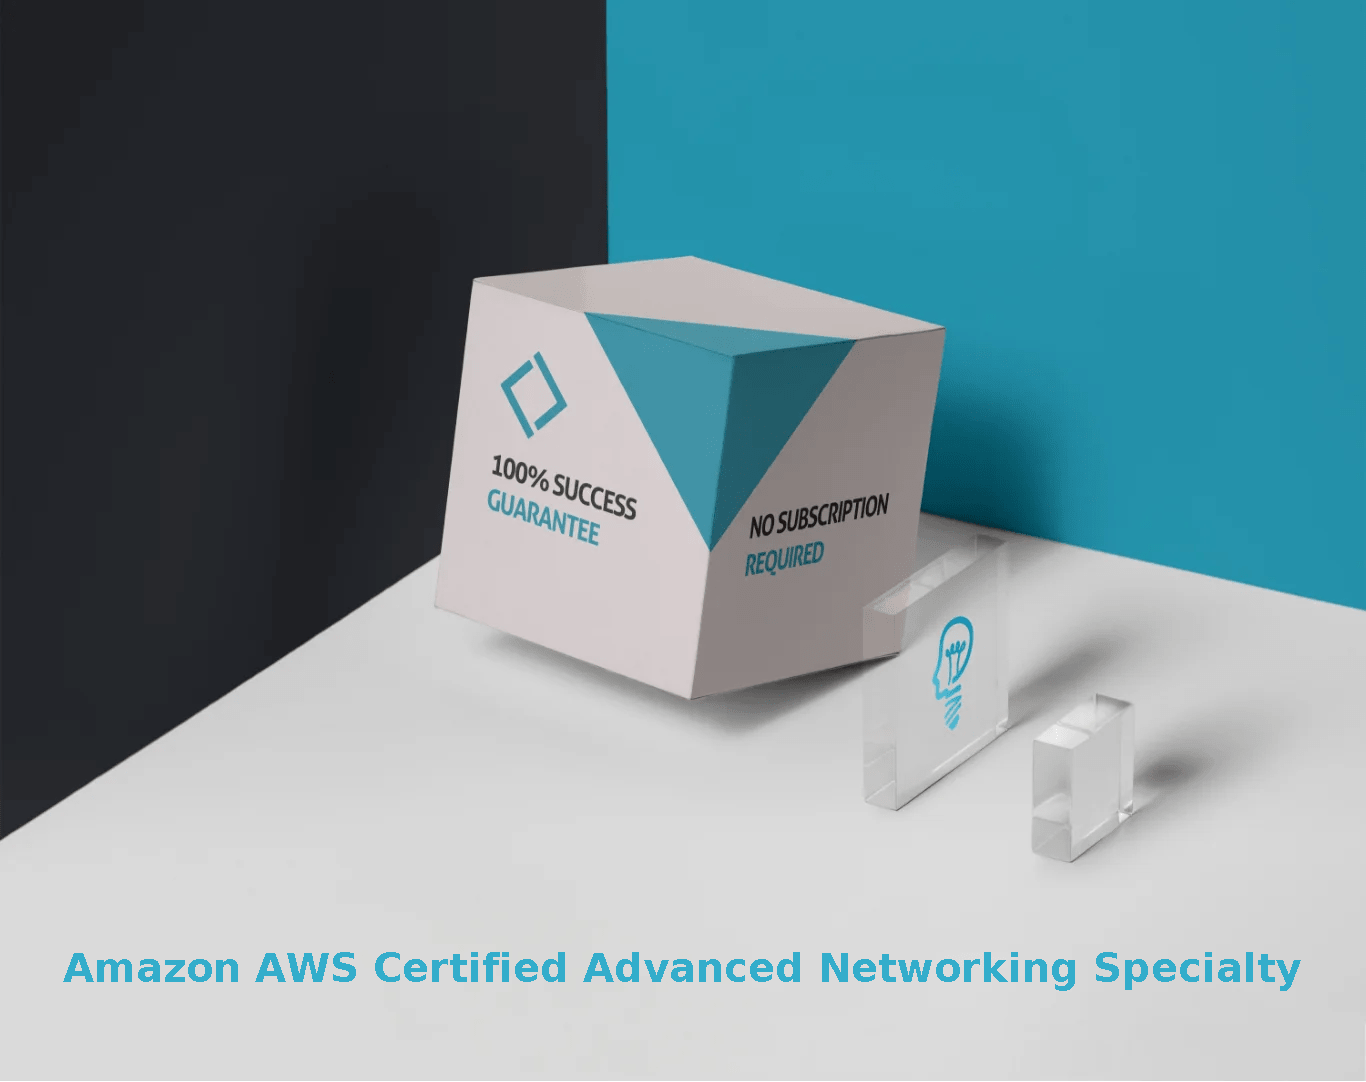 Amazon AWS Certified Advanced Networking Specialty Exams